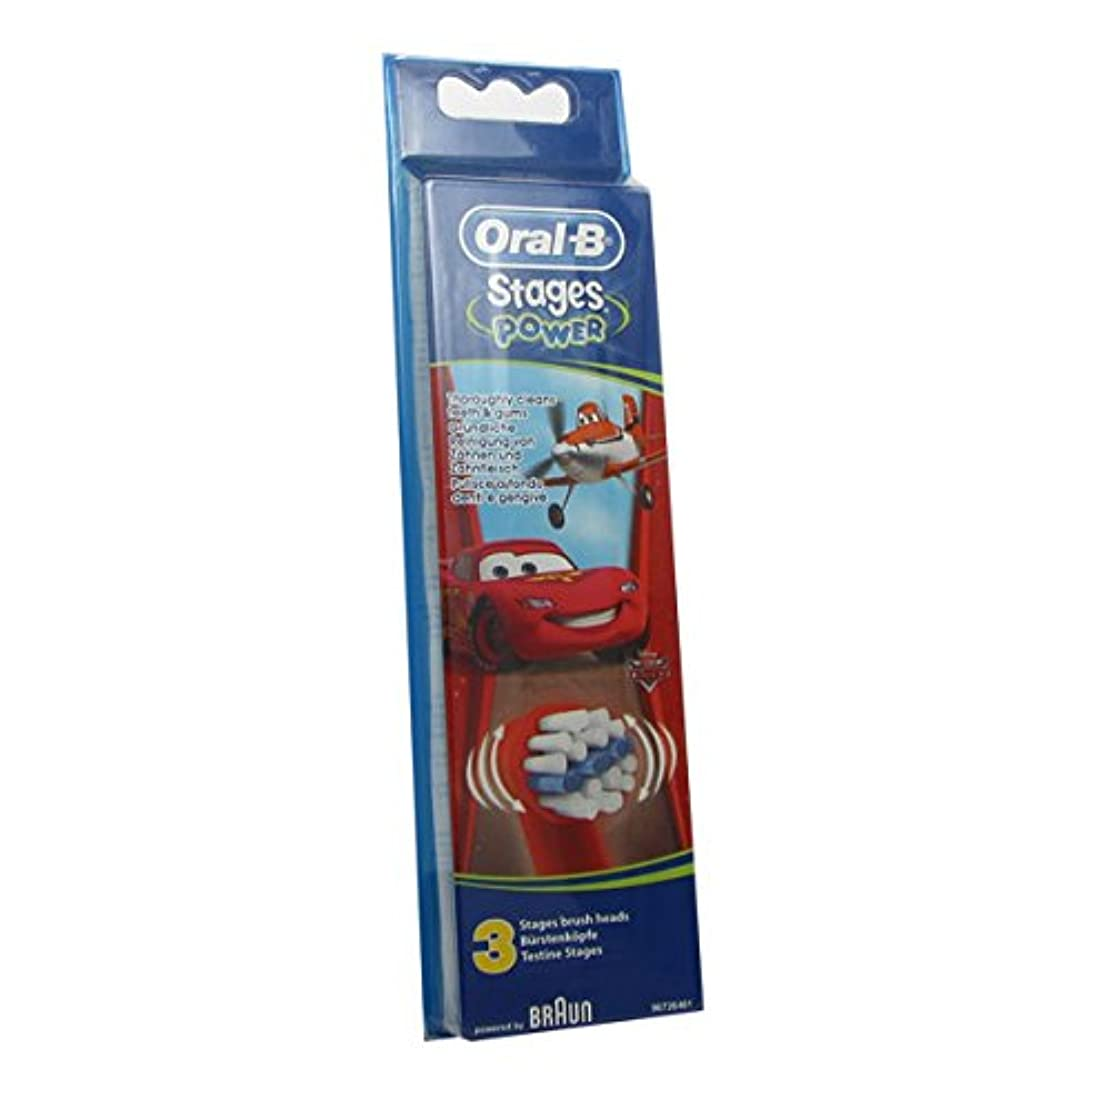 会議パーク子豚Oral B Stages Replacement Brush Cars X3 [並行輸入品]